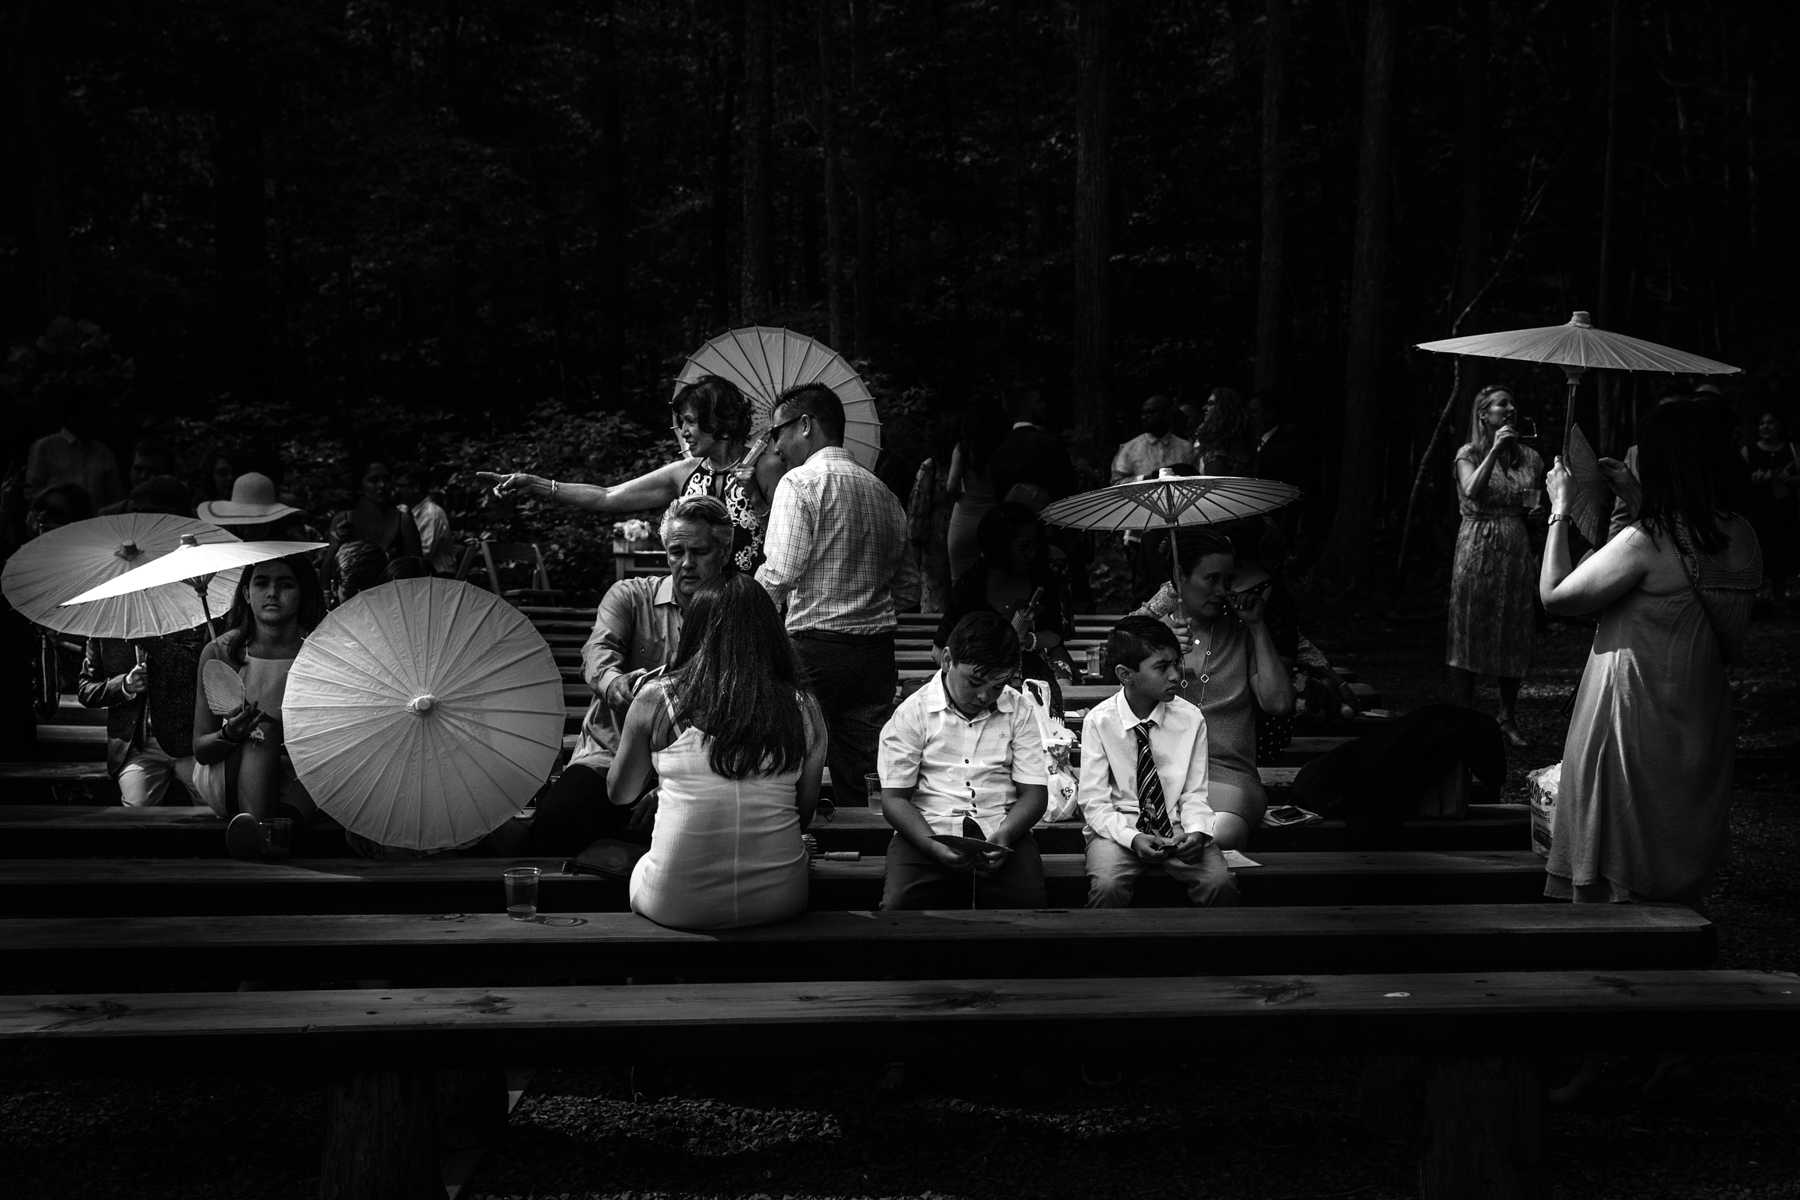 Umbrellas at Wedding in Shenandoah Woods, Virginia